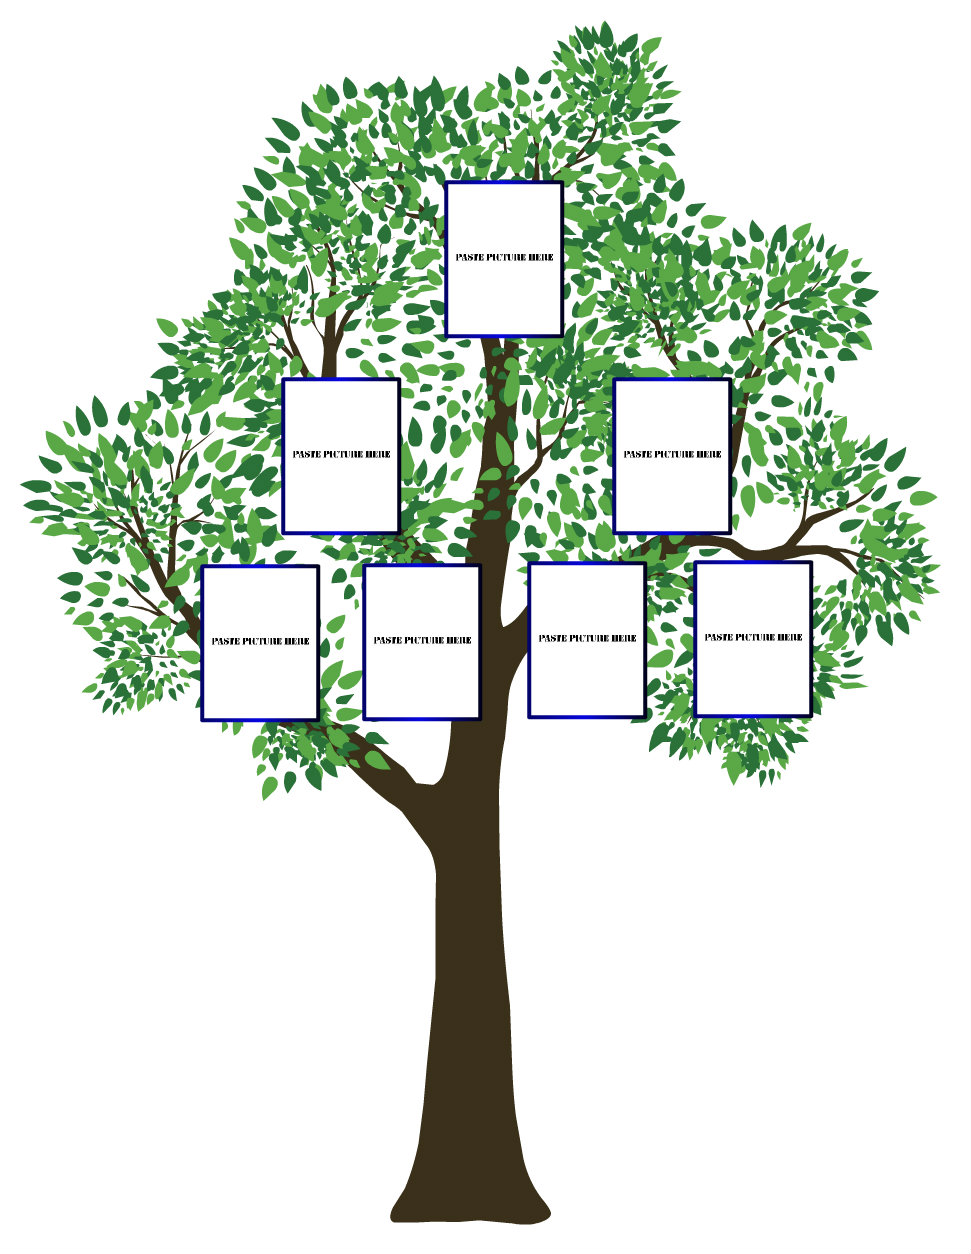 Spanish Family Tree Project Powerpoint | www.galleryhip.com - The ...